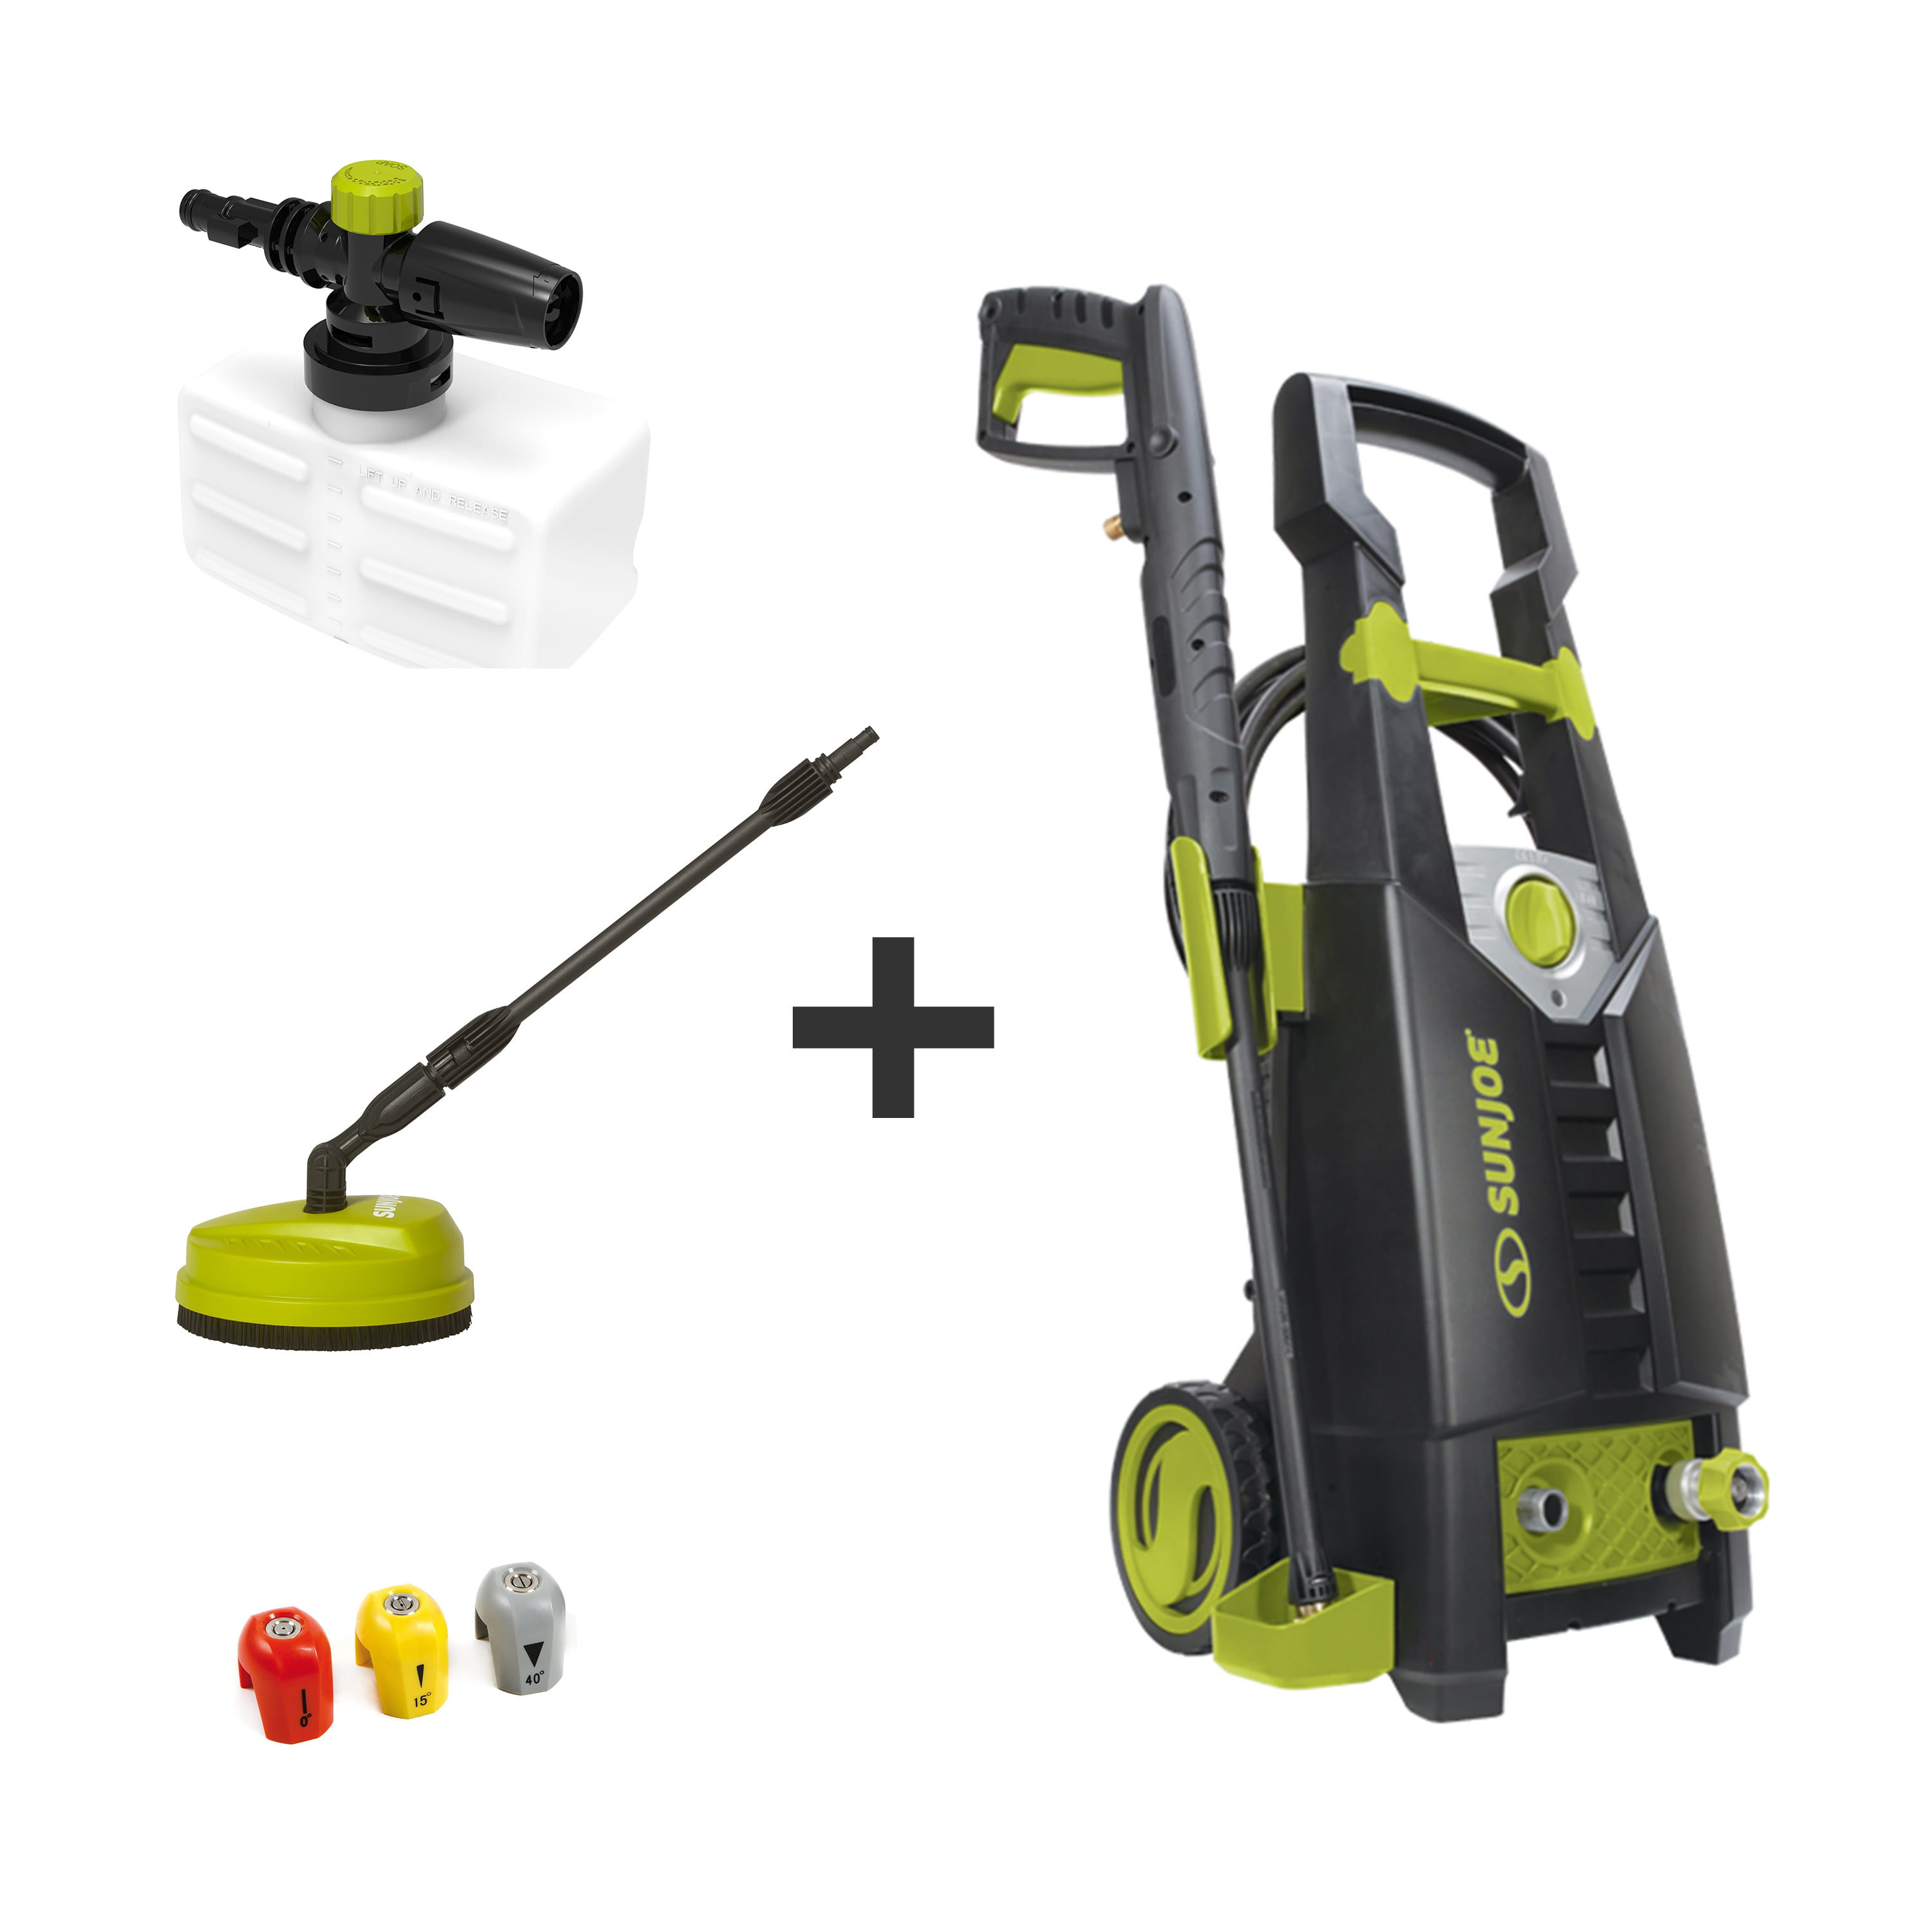 Sun Joe SPX2598P-MAX 2000 PSI 1.6 GPM 13-Amp Electric High Pressure Washer, Cleans Cars/Fences/Patios w/Bonus Patio Surface Cleaner and Foam Cannon - Walmart.com